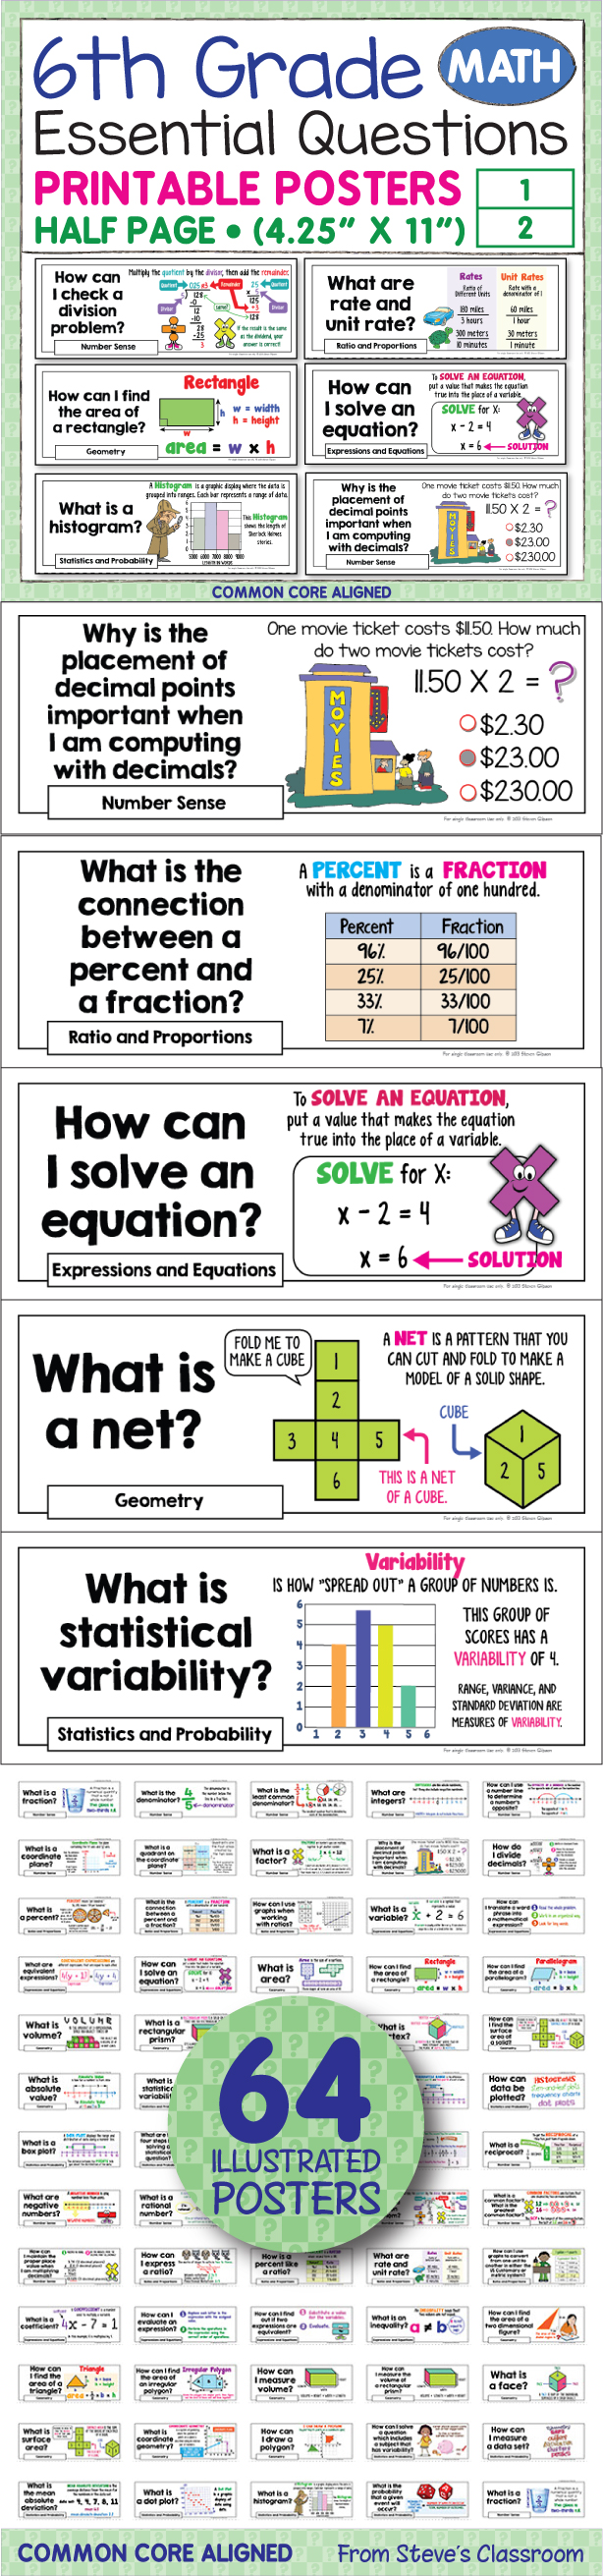 Essential questions for 6th grade math math pinterest wall bring the sixth grade math common core essential questions to life with these easy to use printable posters every question is illustrated and fandeluxe